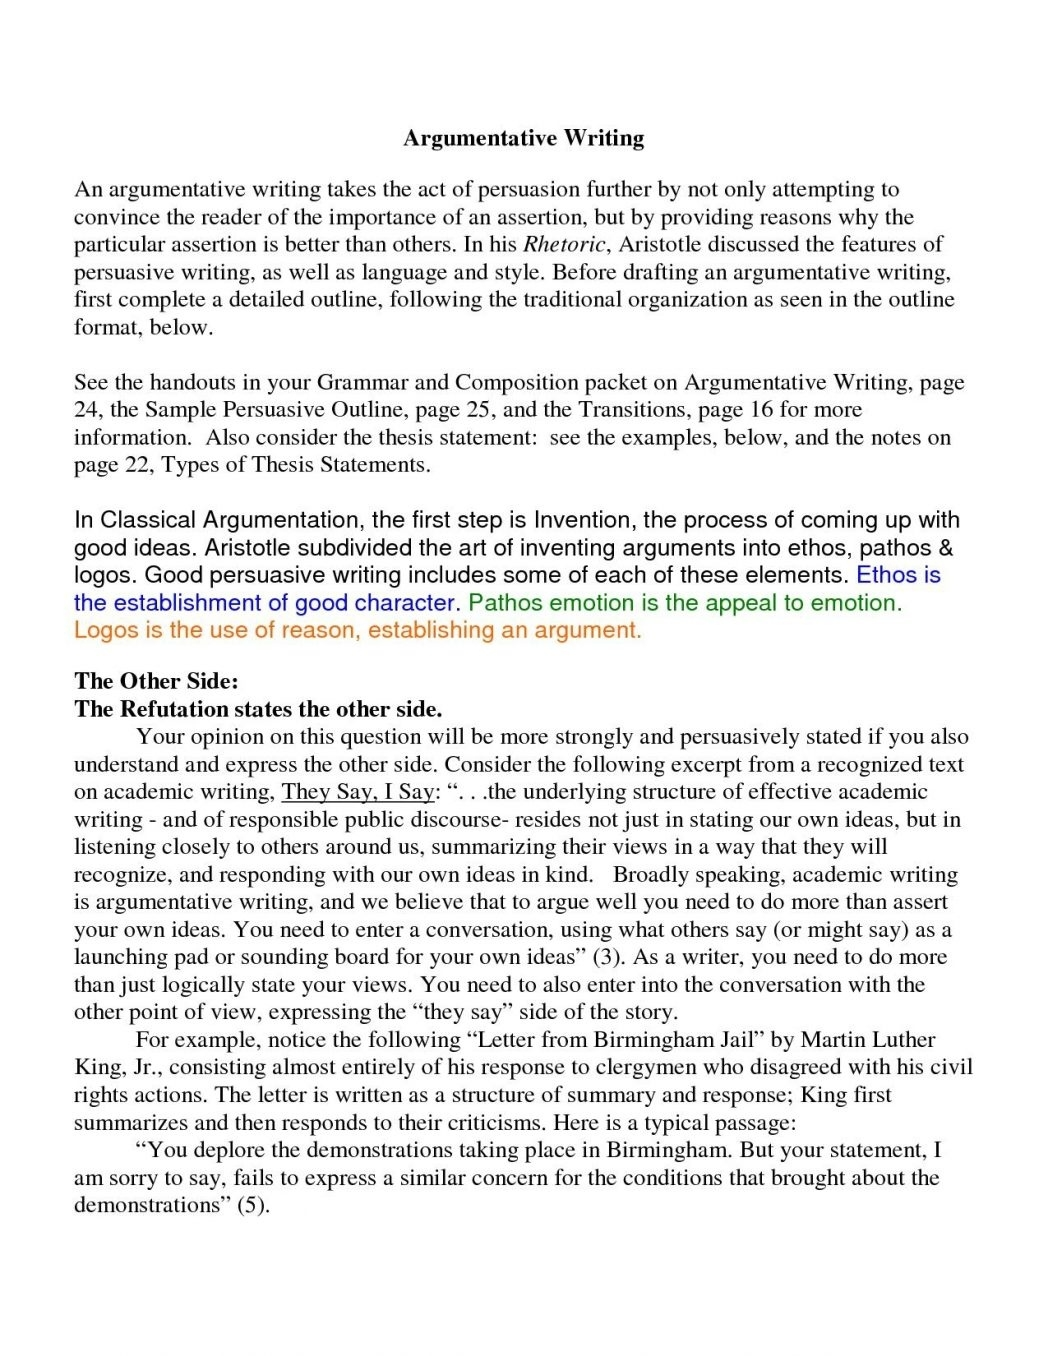 019 Argumentative Essay Samples For College Examples Of Persuasive Inside Level Example Awful Vs Are And Essays The Same Differentiate Full